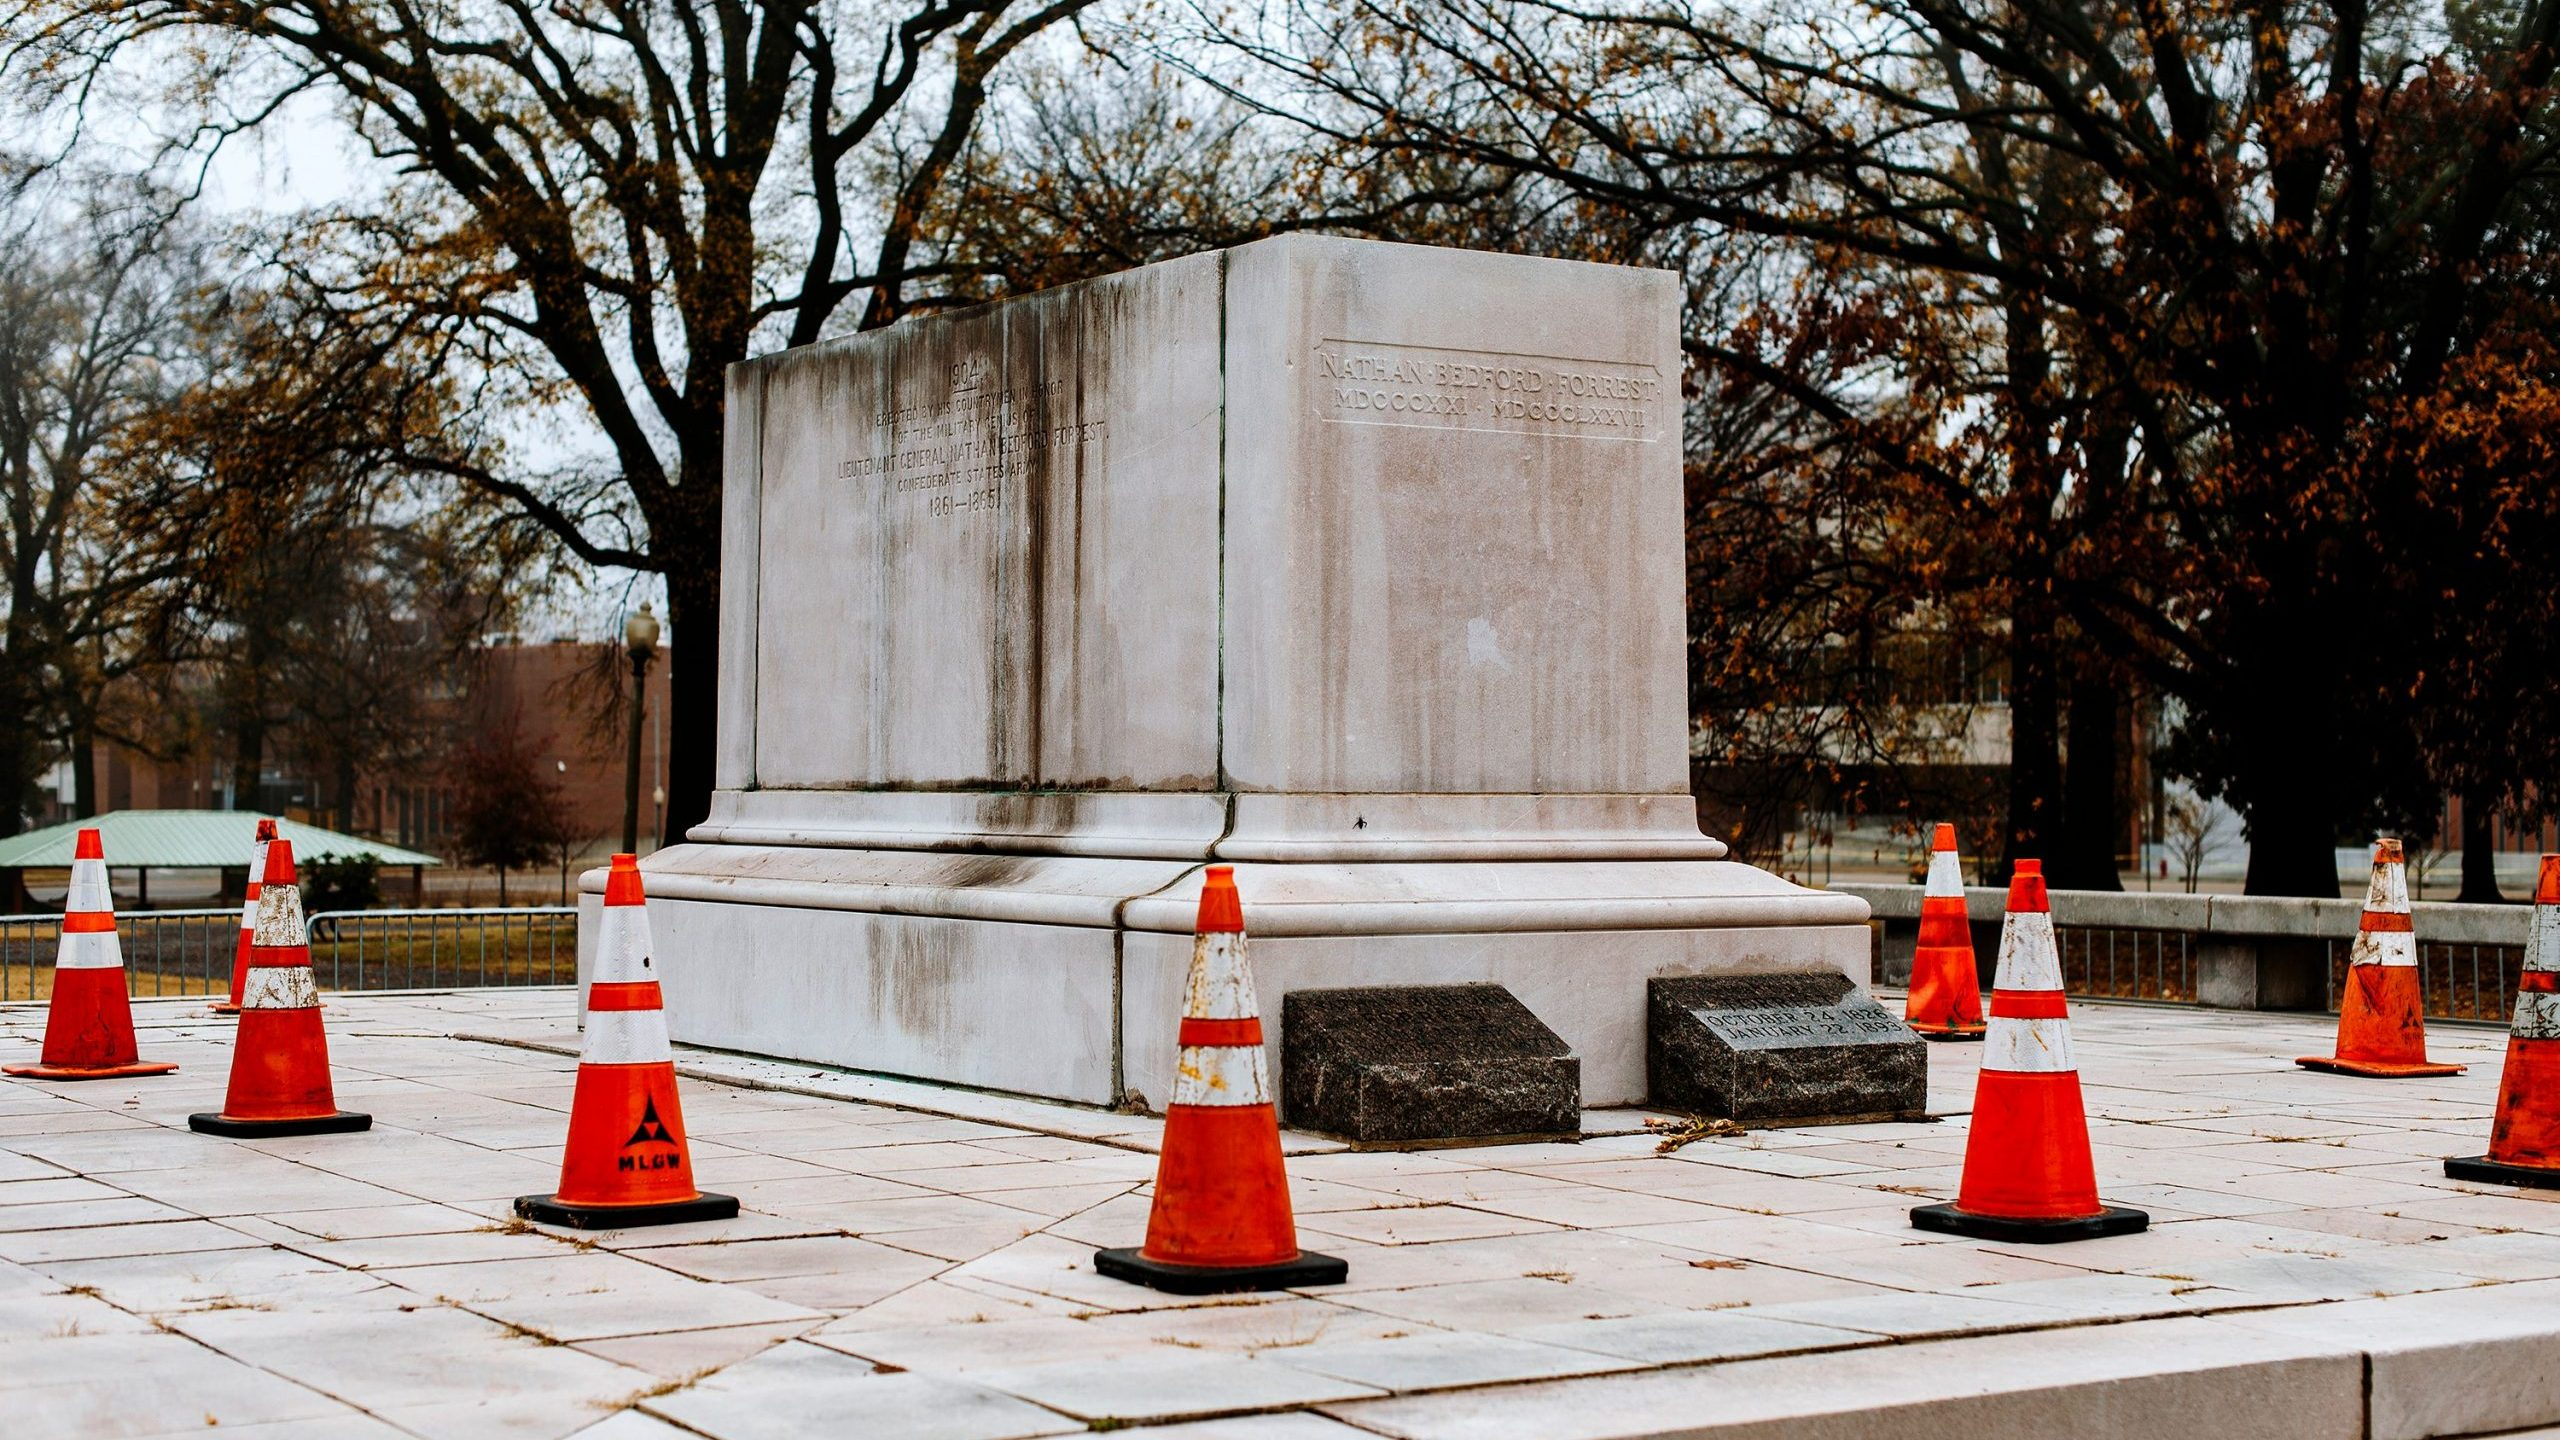 Remains of the Nathan Bedford Forrest Monument at the Health Sciences Park, Memphis, US